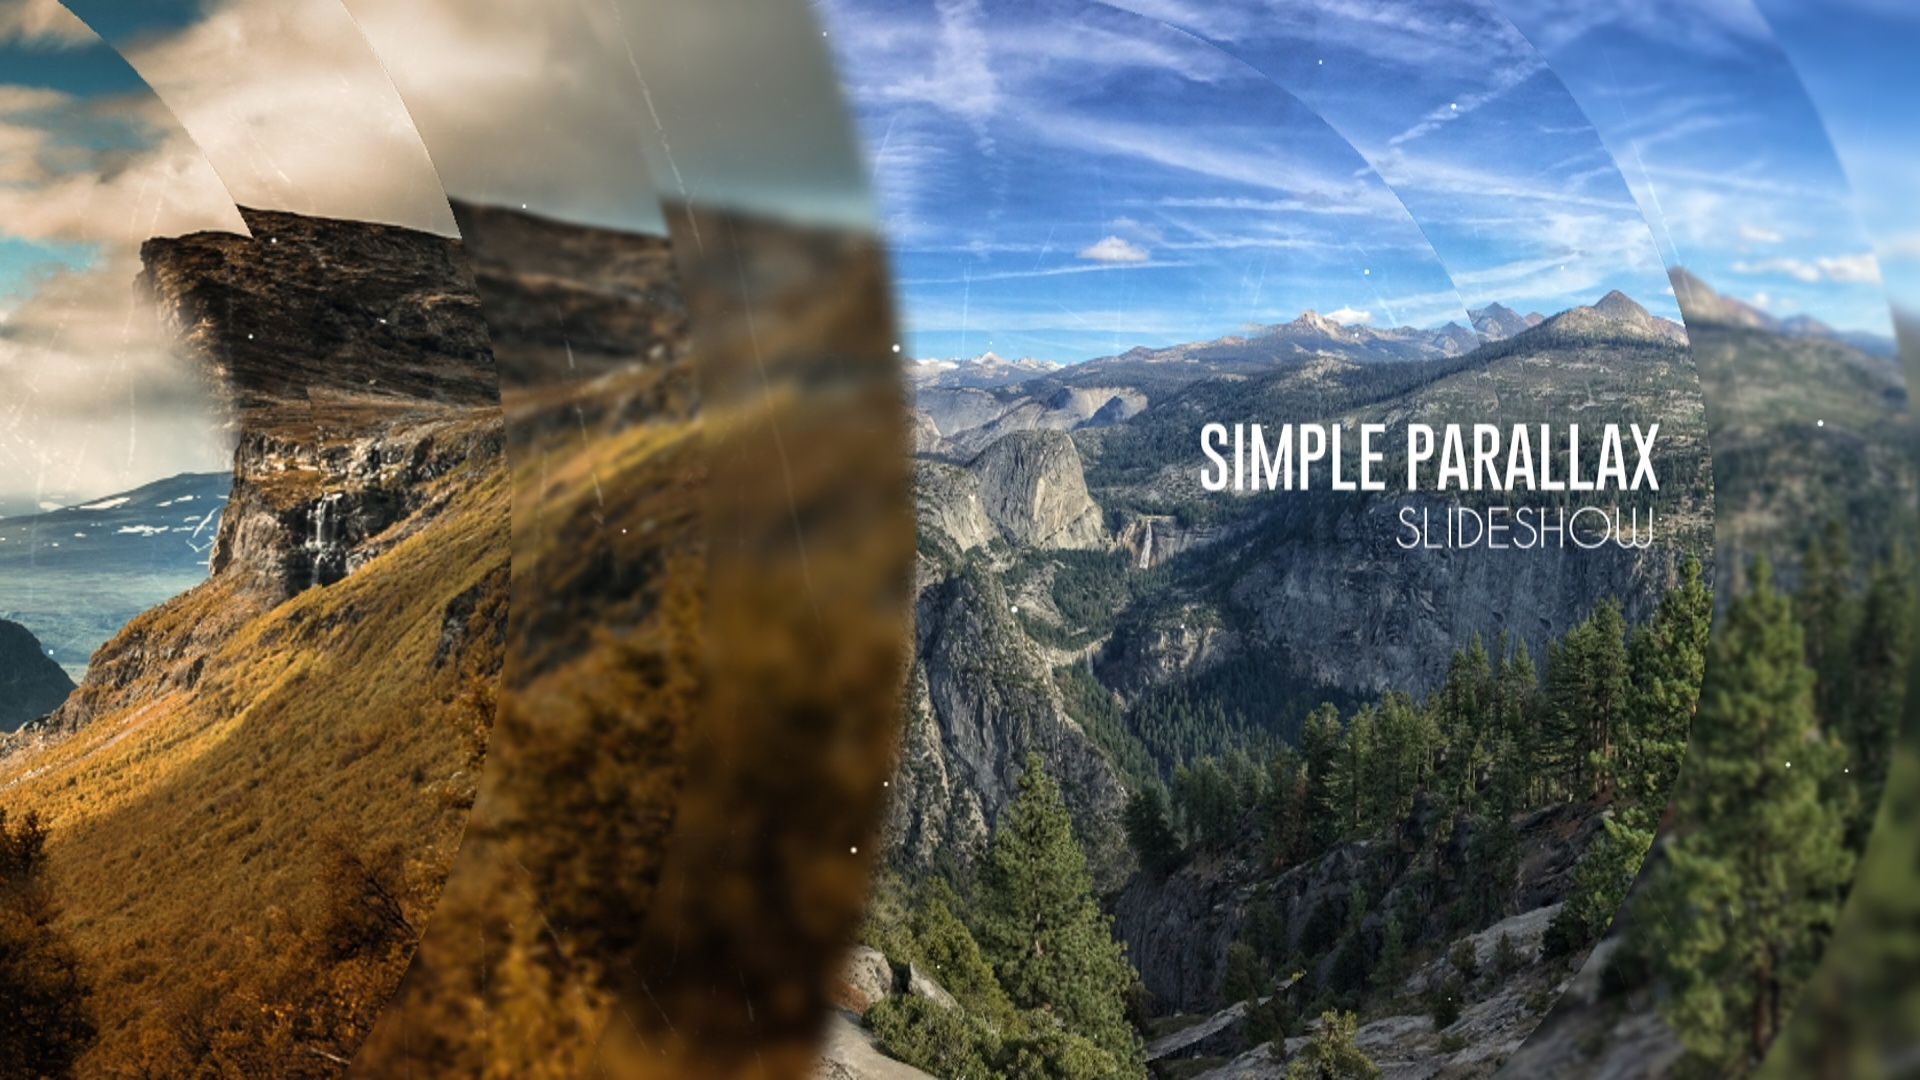 Template Parallax Slideshow Sony Vegas 12 13 14 15 And Shock Prod